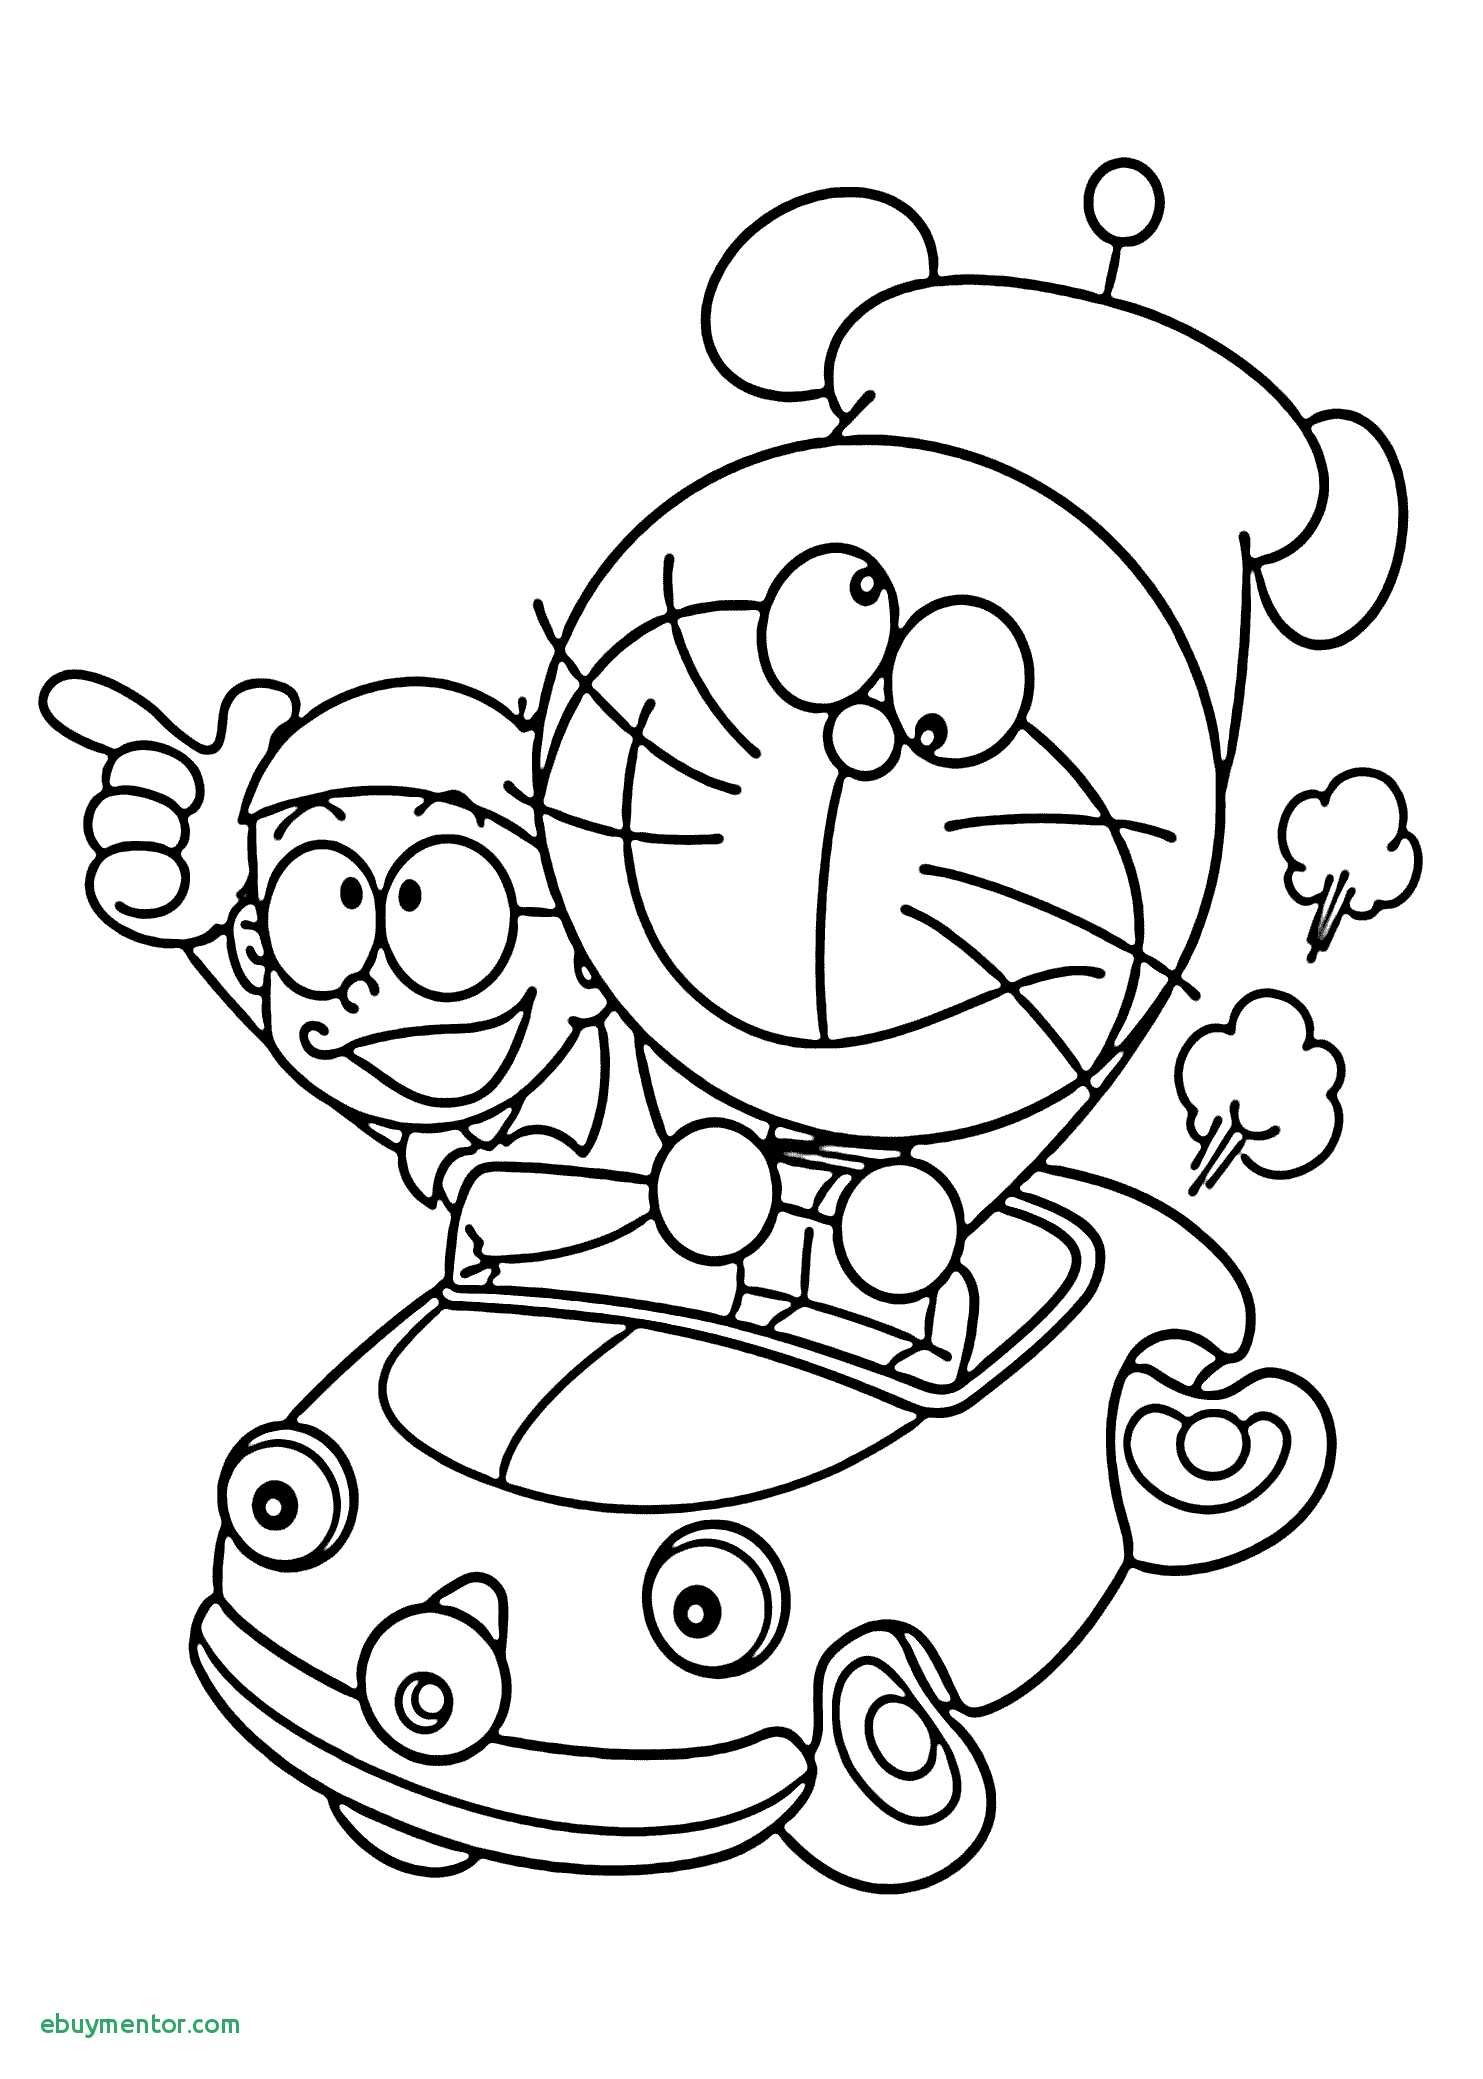 Free Printable Vintage Christmas Coloring Pages With Inspirationa Doraemon In Car